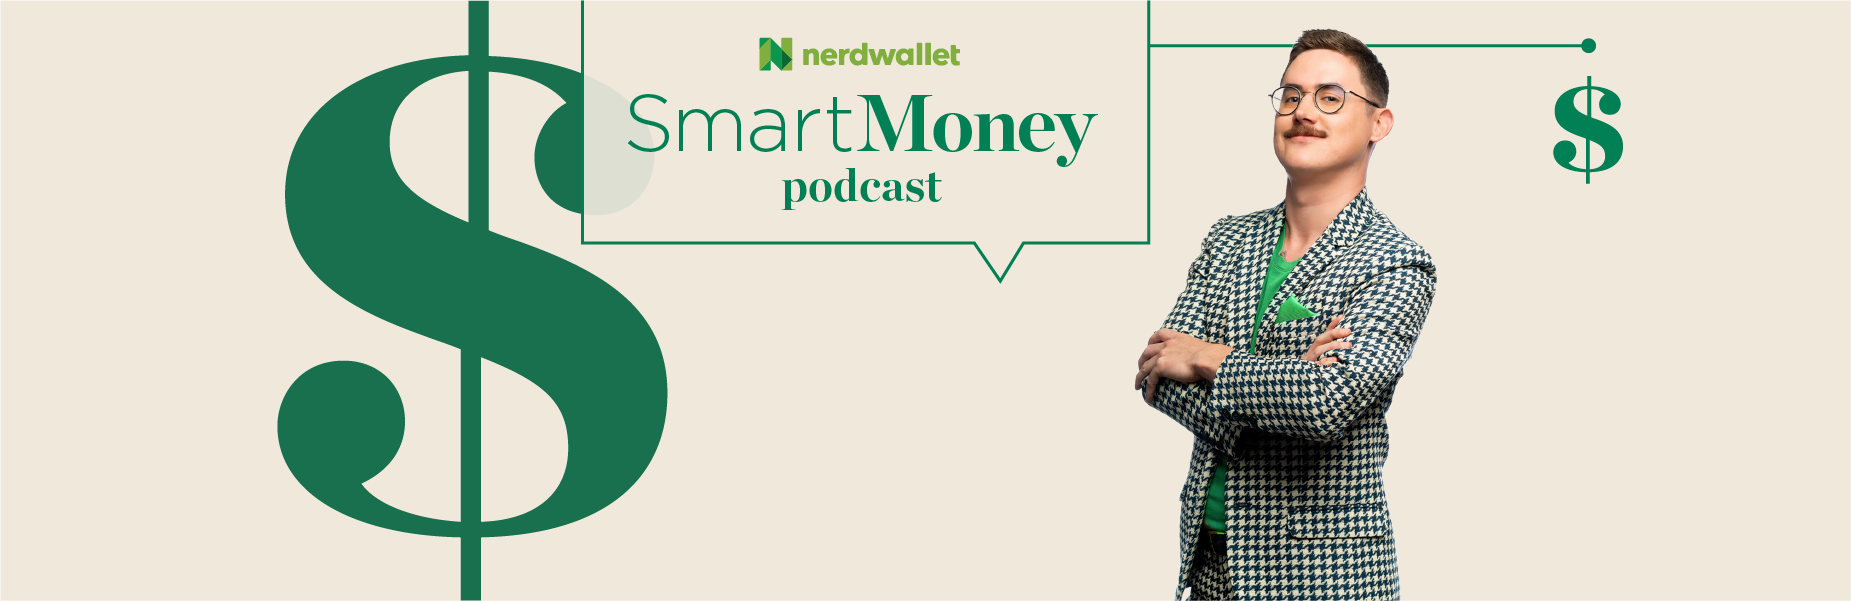 SmartMoney Podcast: 'Can a Spending Fast Save Me Money?' - NerdWallet